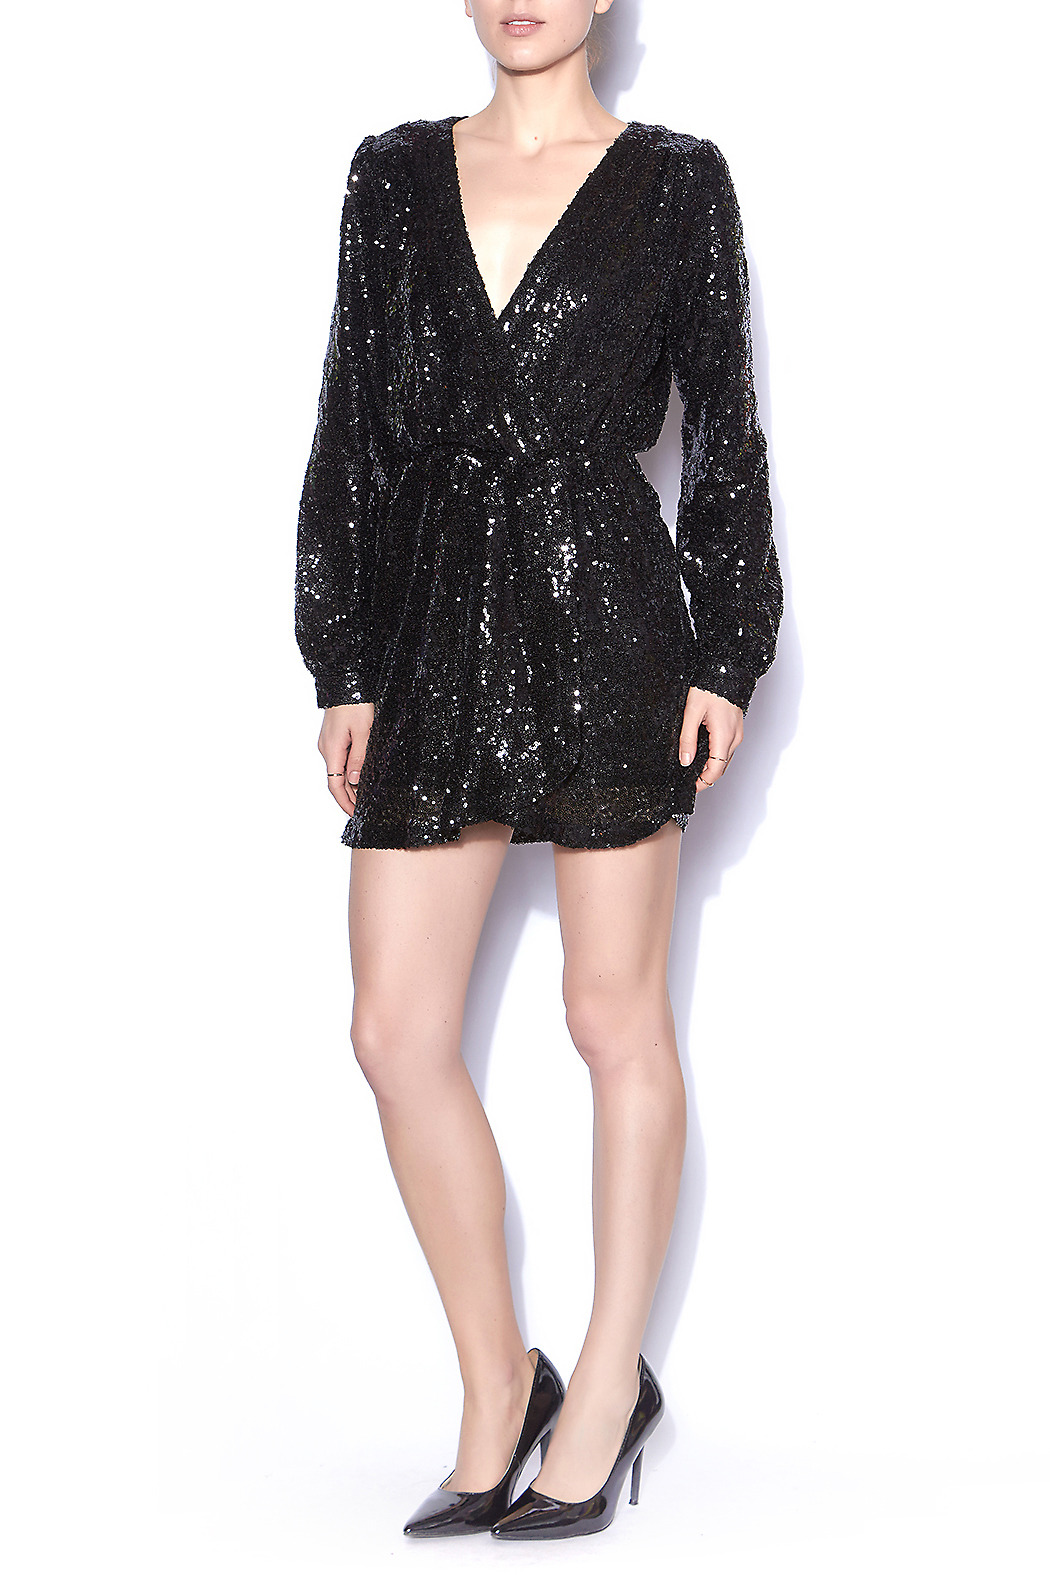 9d2e0641c37f Honey Punch Black Sequin Wrap Dress from Mississippi by LipChic ...